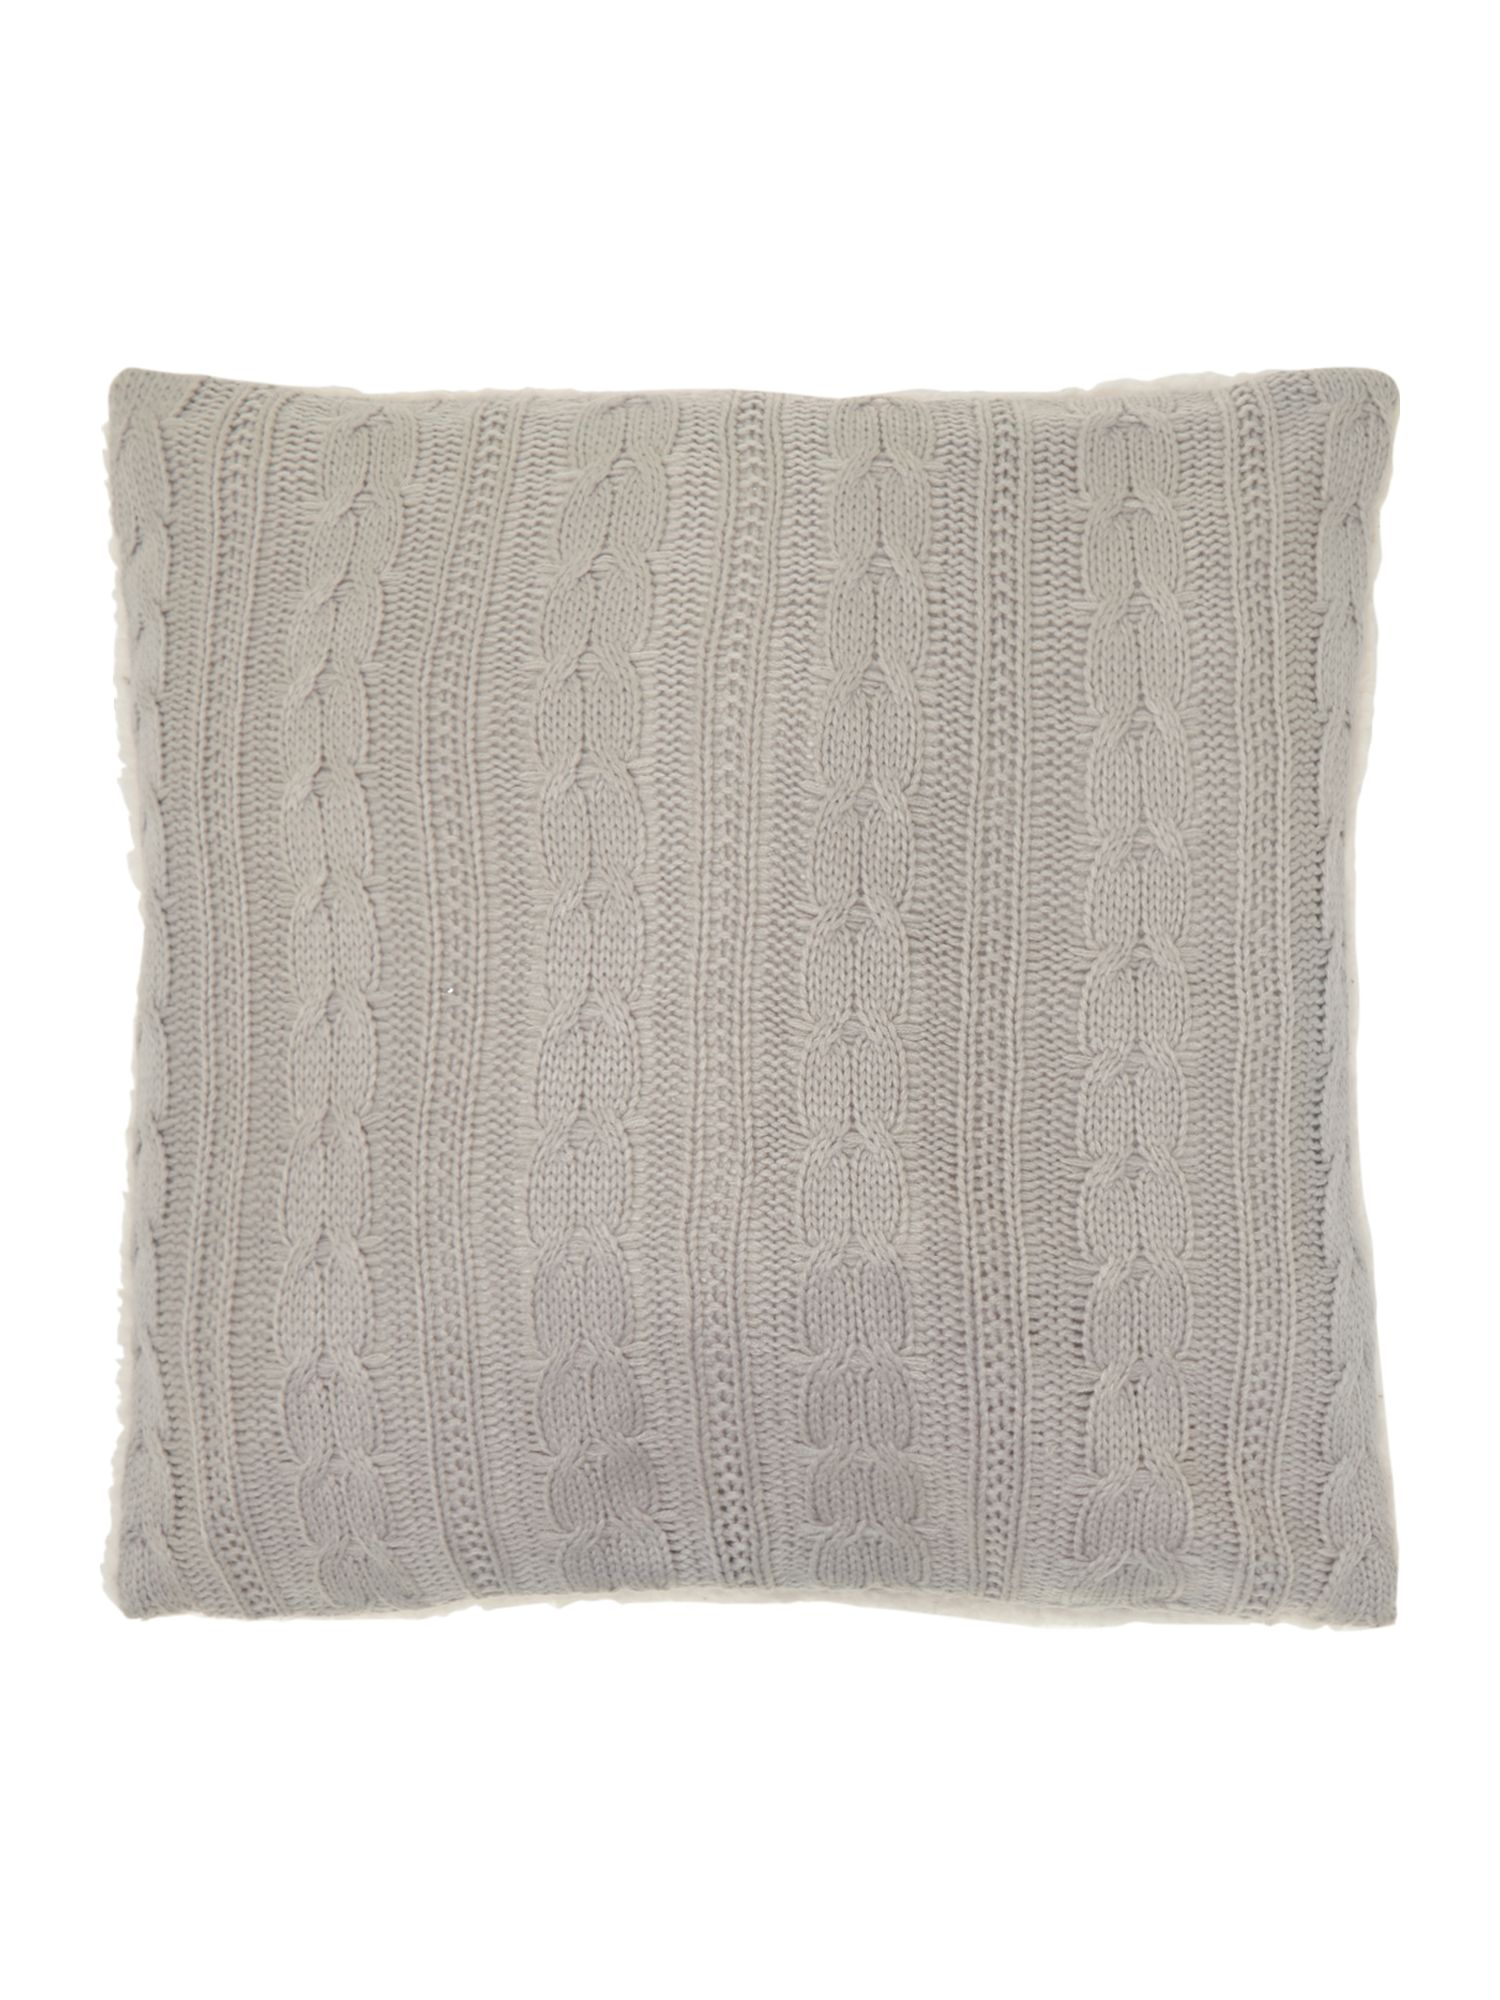 house of fraser linea cable knit sherpa cushion grey ebay. Black Bedroom Furniture Sets. Home Design Ideas